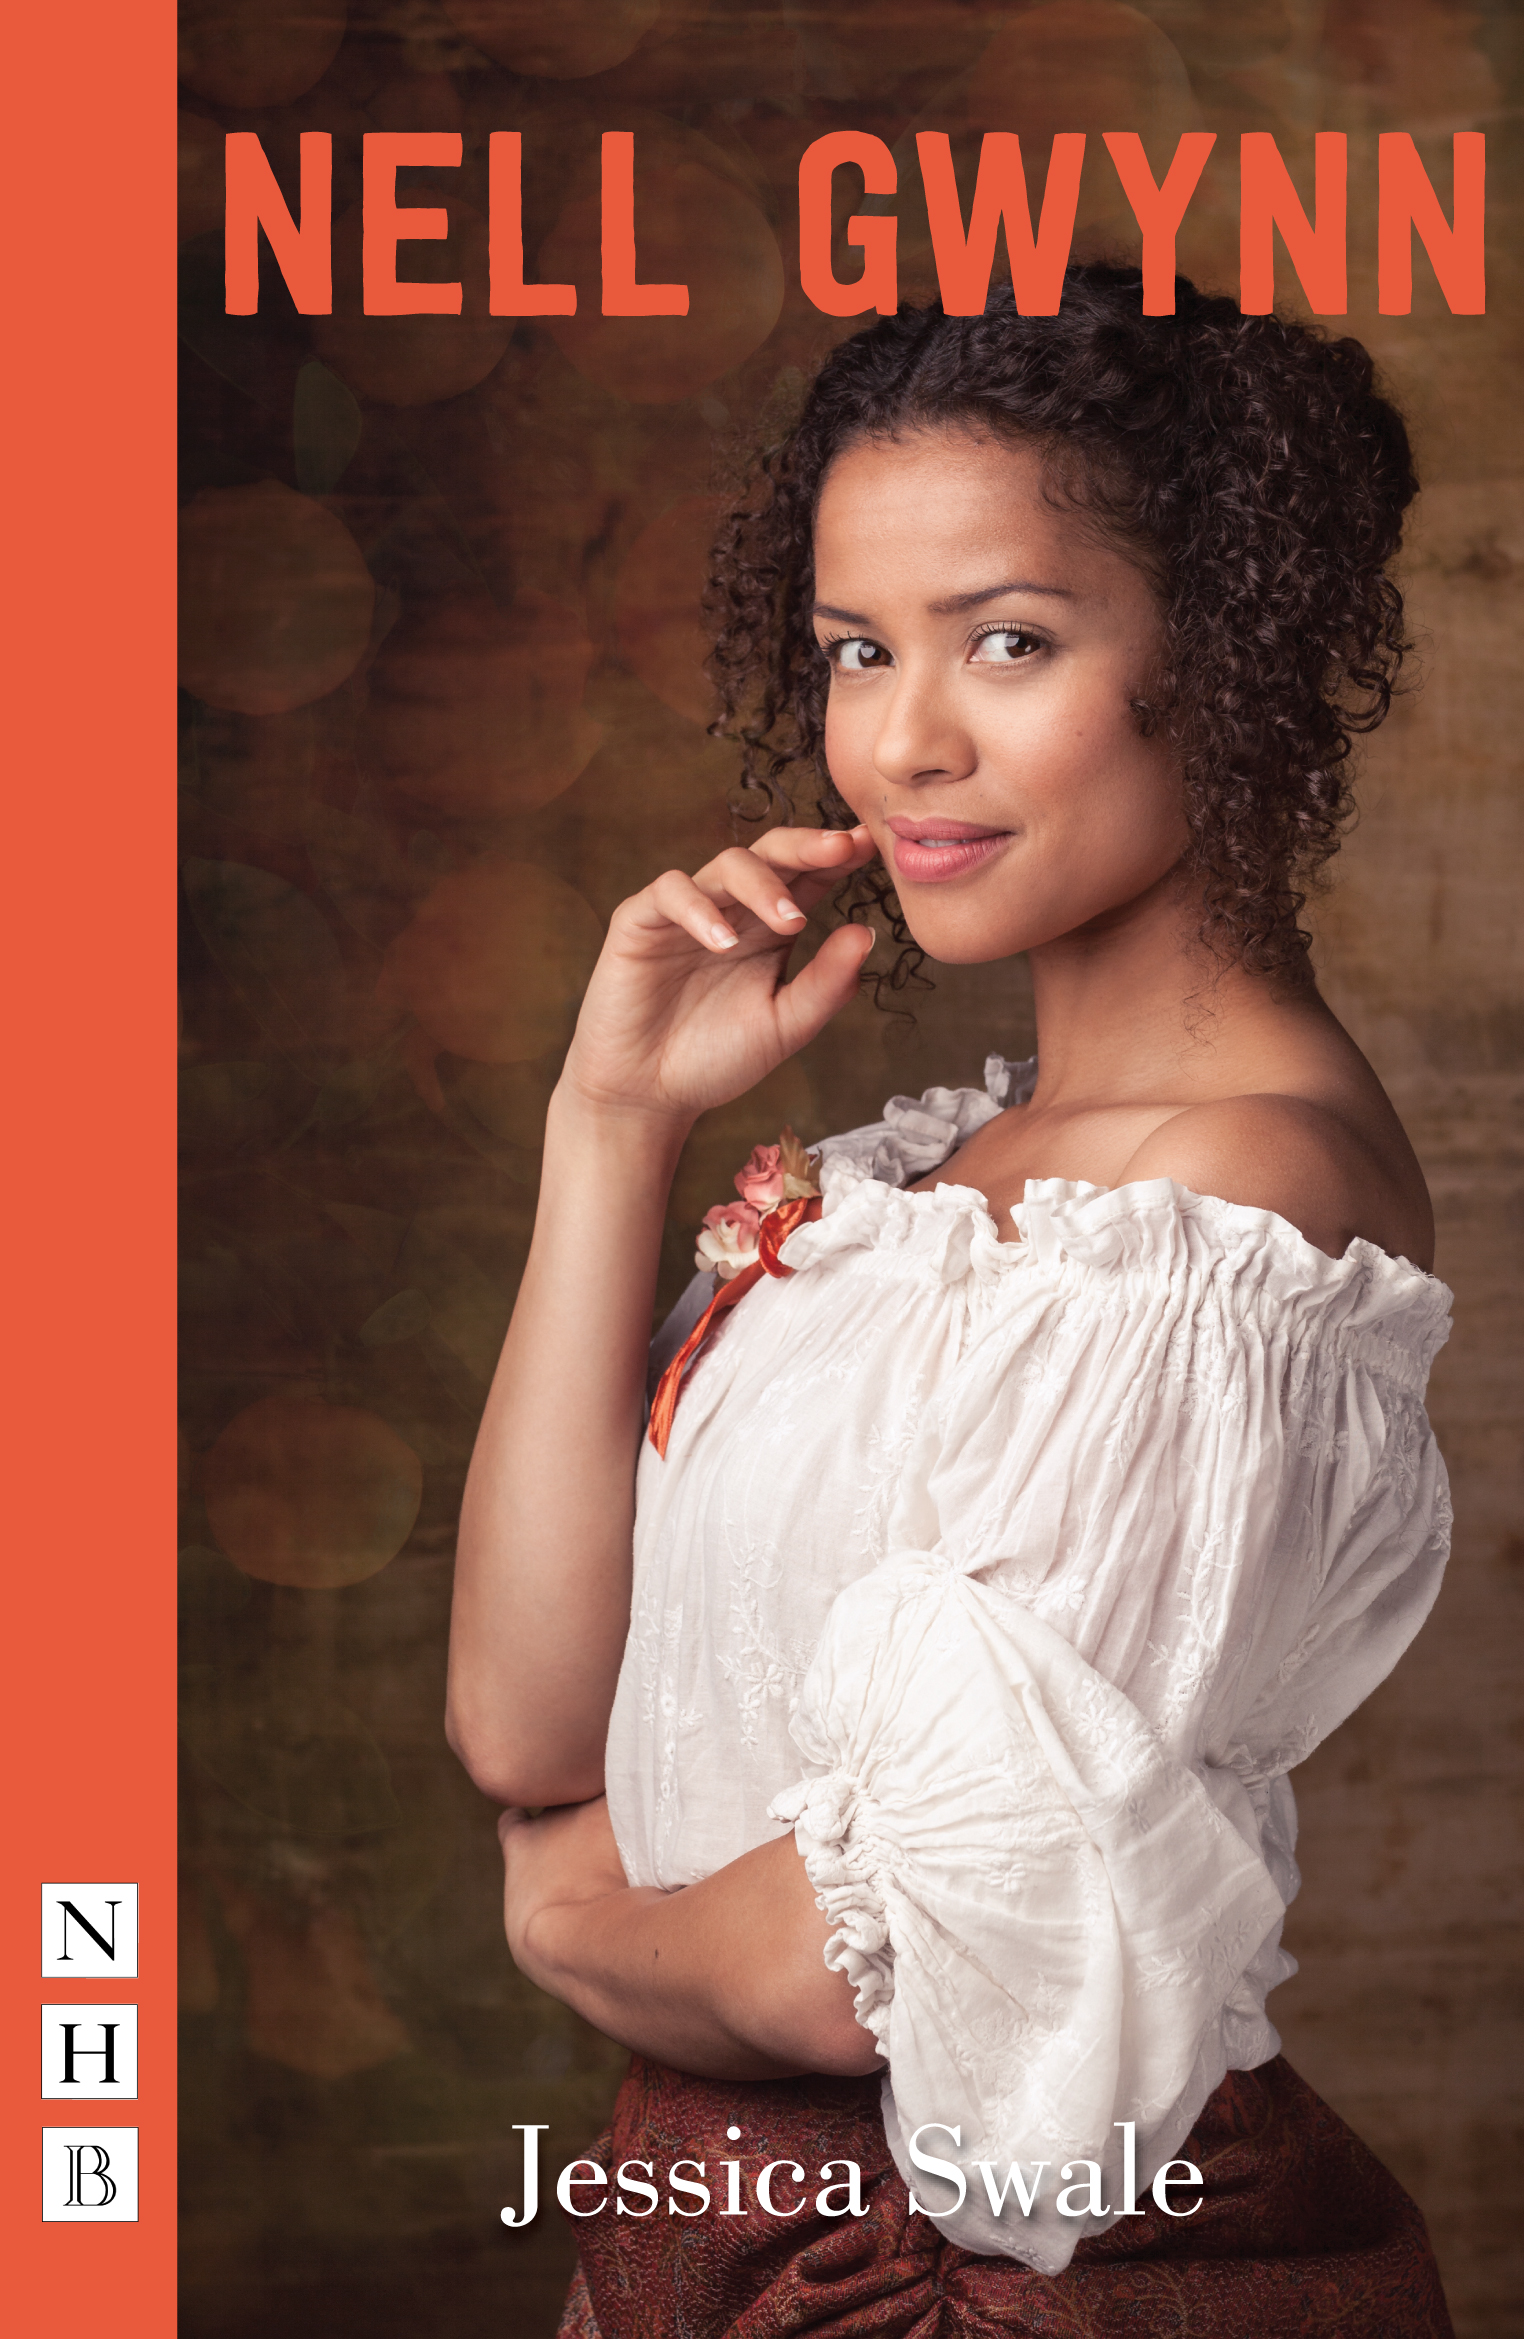 NELL GWYNN by Jessica Swale available now!